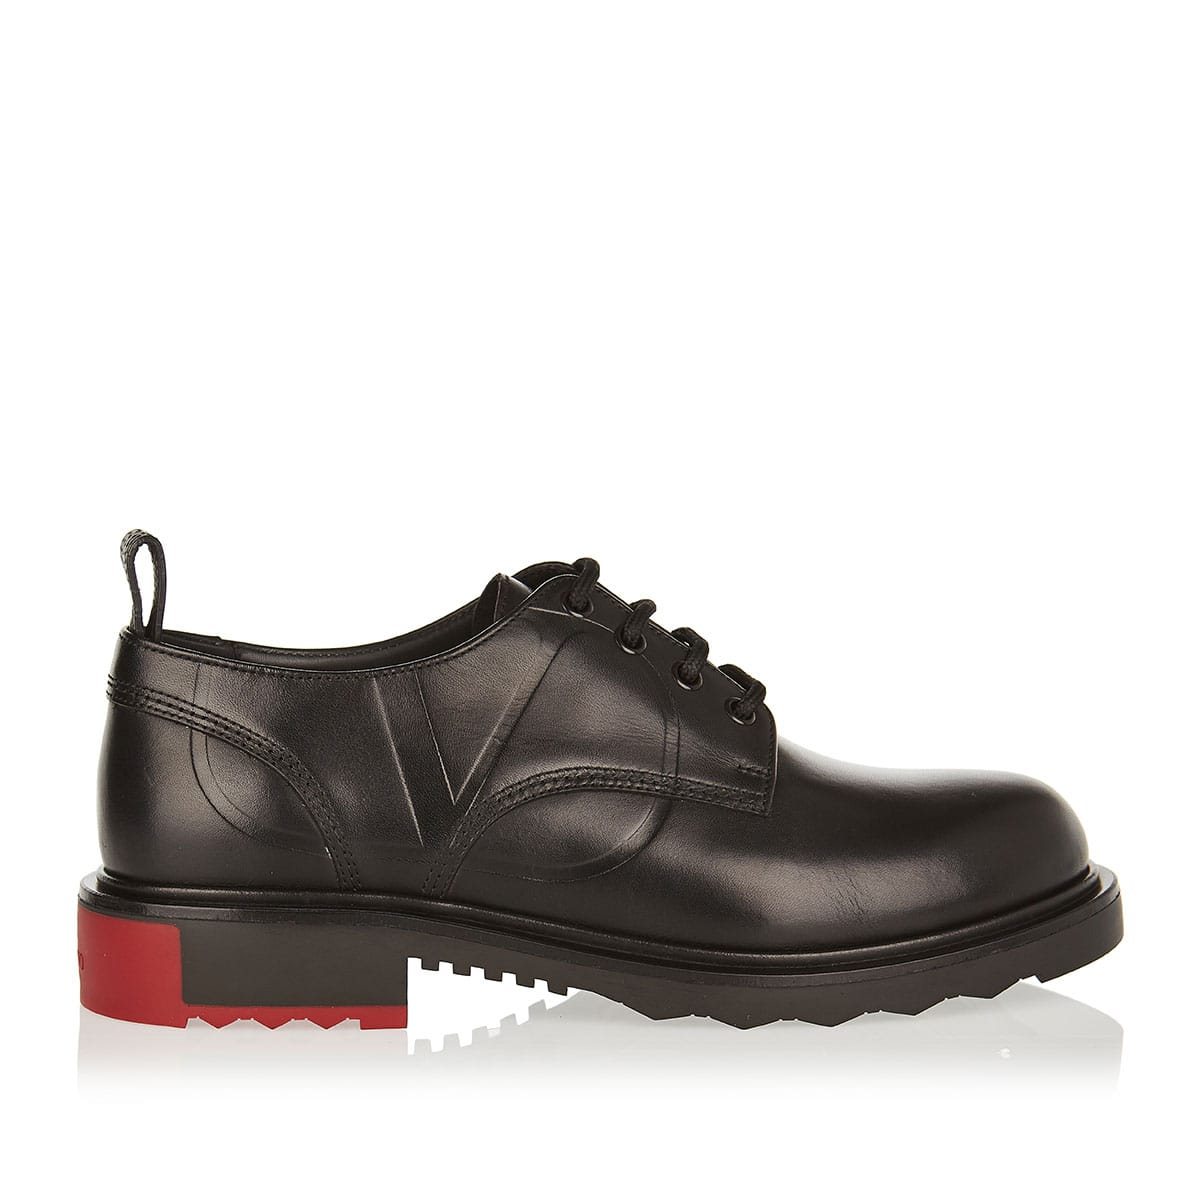 Vlogo leather derby shoes